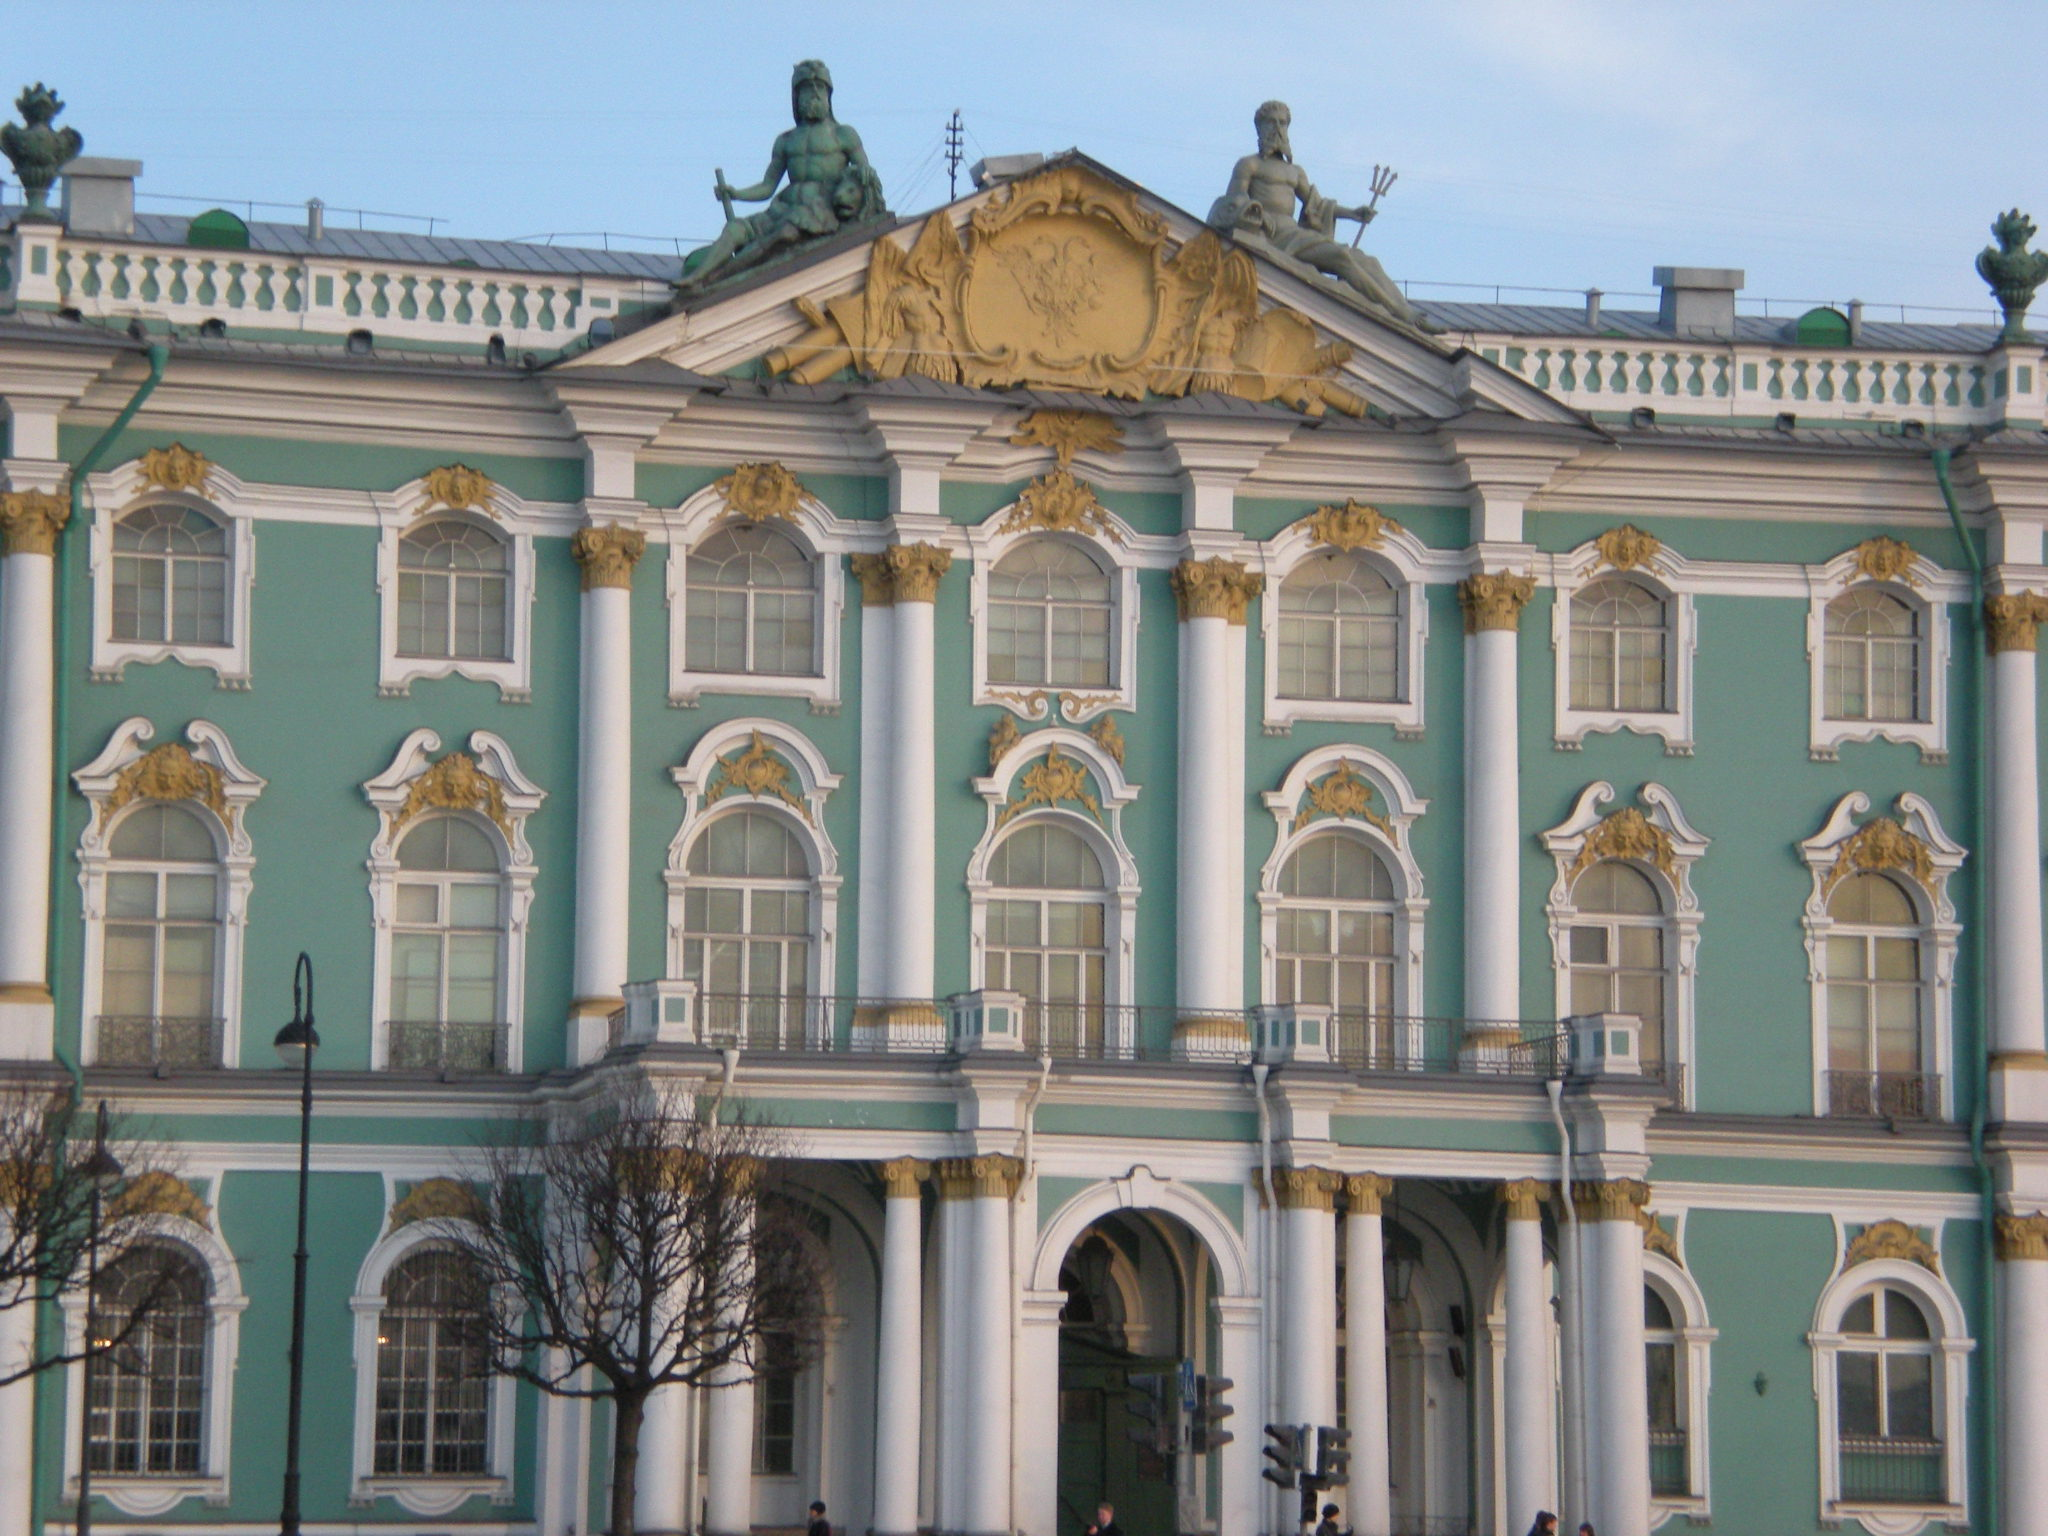 Winter_Palace_-_Hermitage,_St-_Petersbur